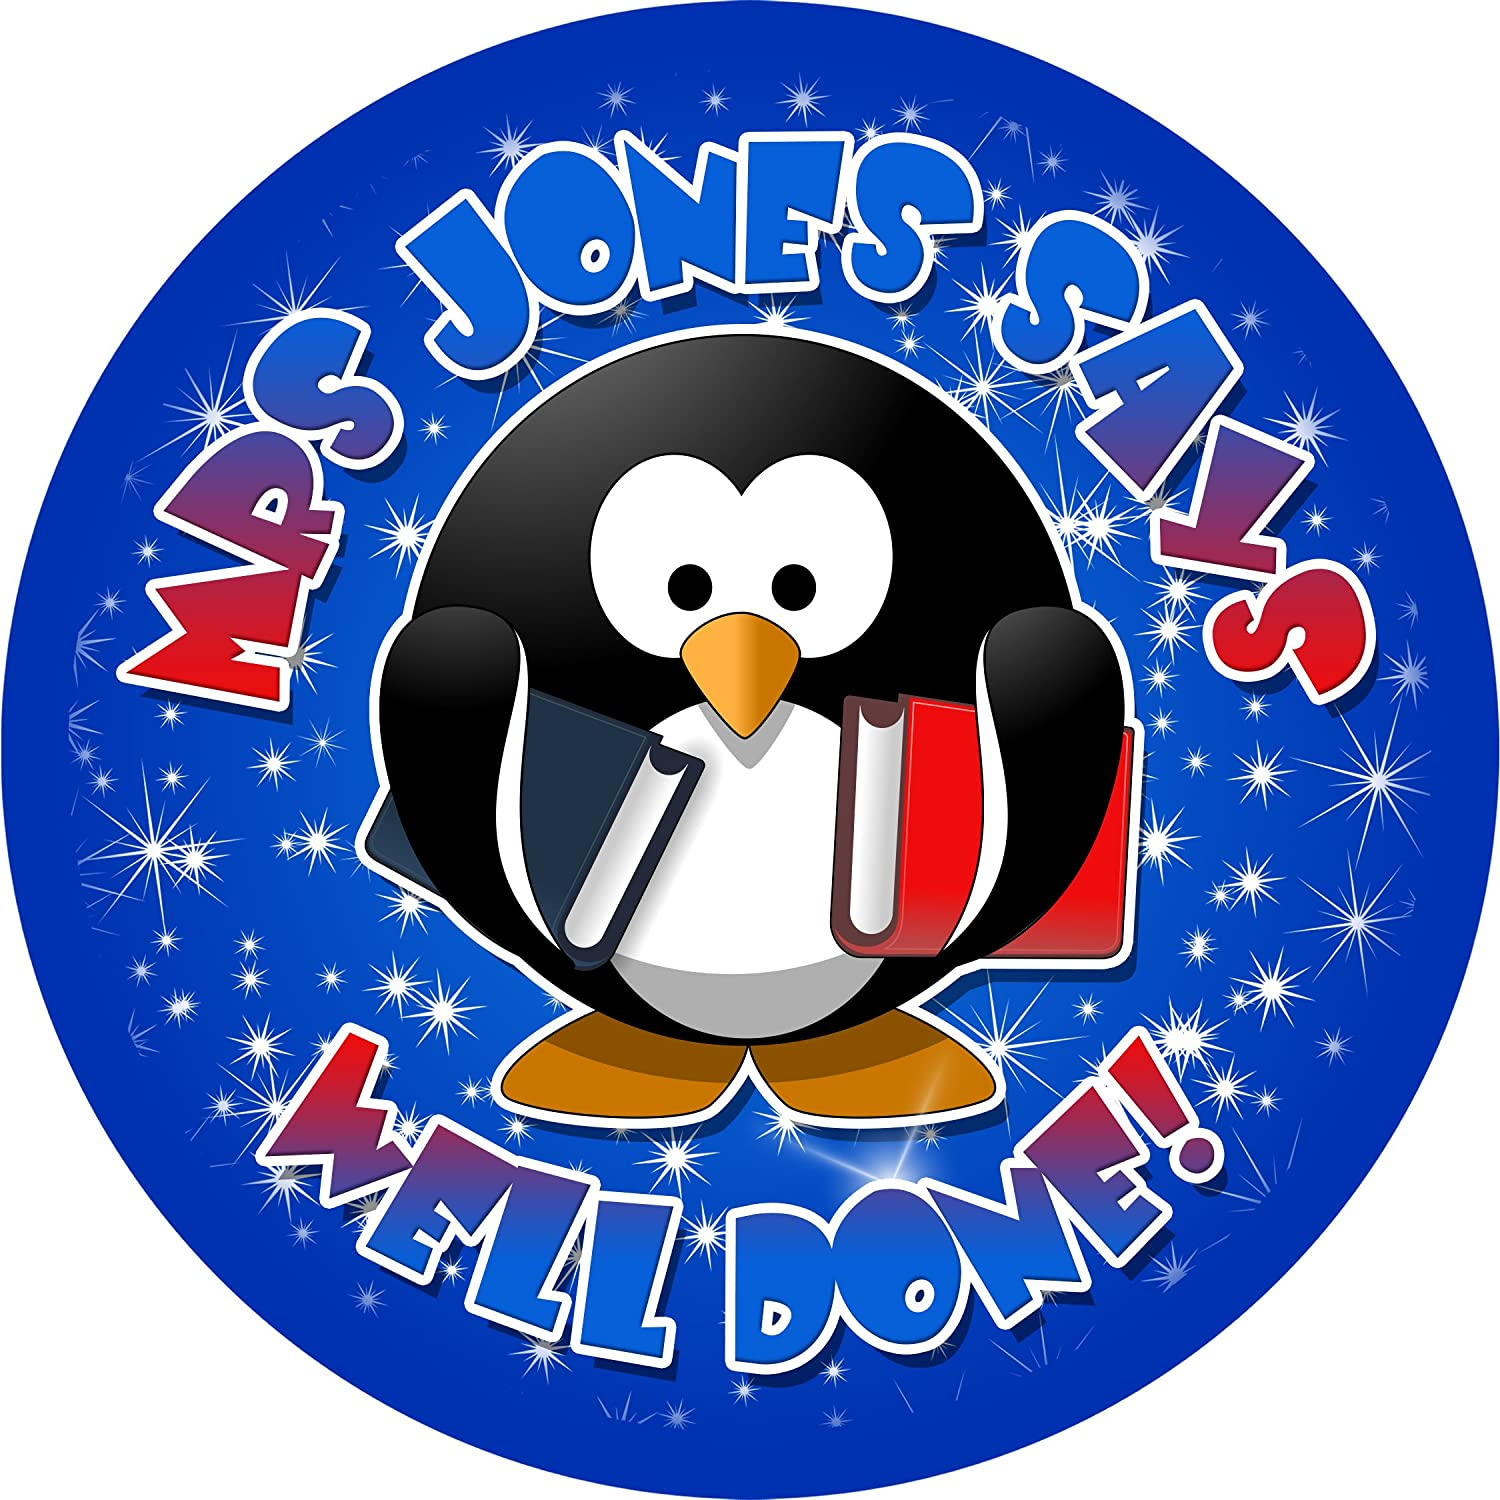 School stickers penguin sticker labels personalised seals ideal for party bags sweet cones favours jars presentations gift boxes bottles